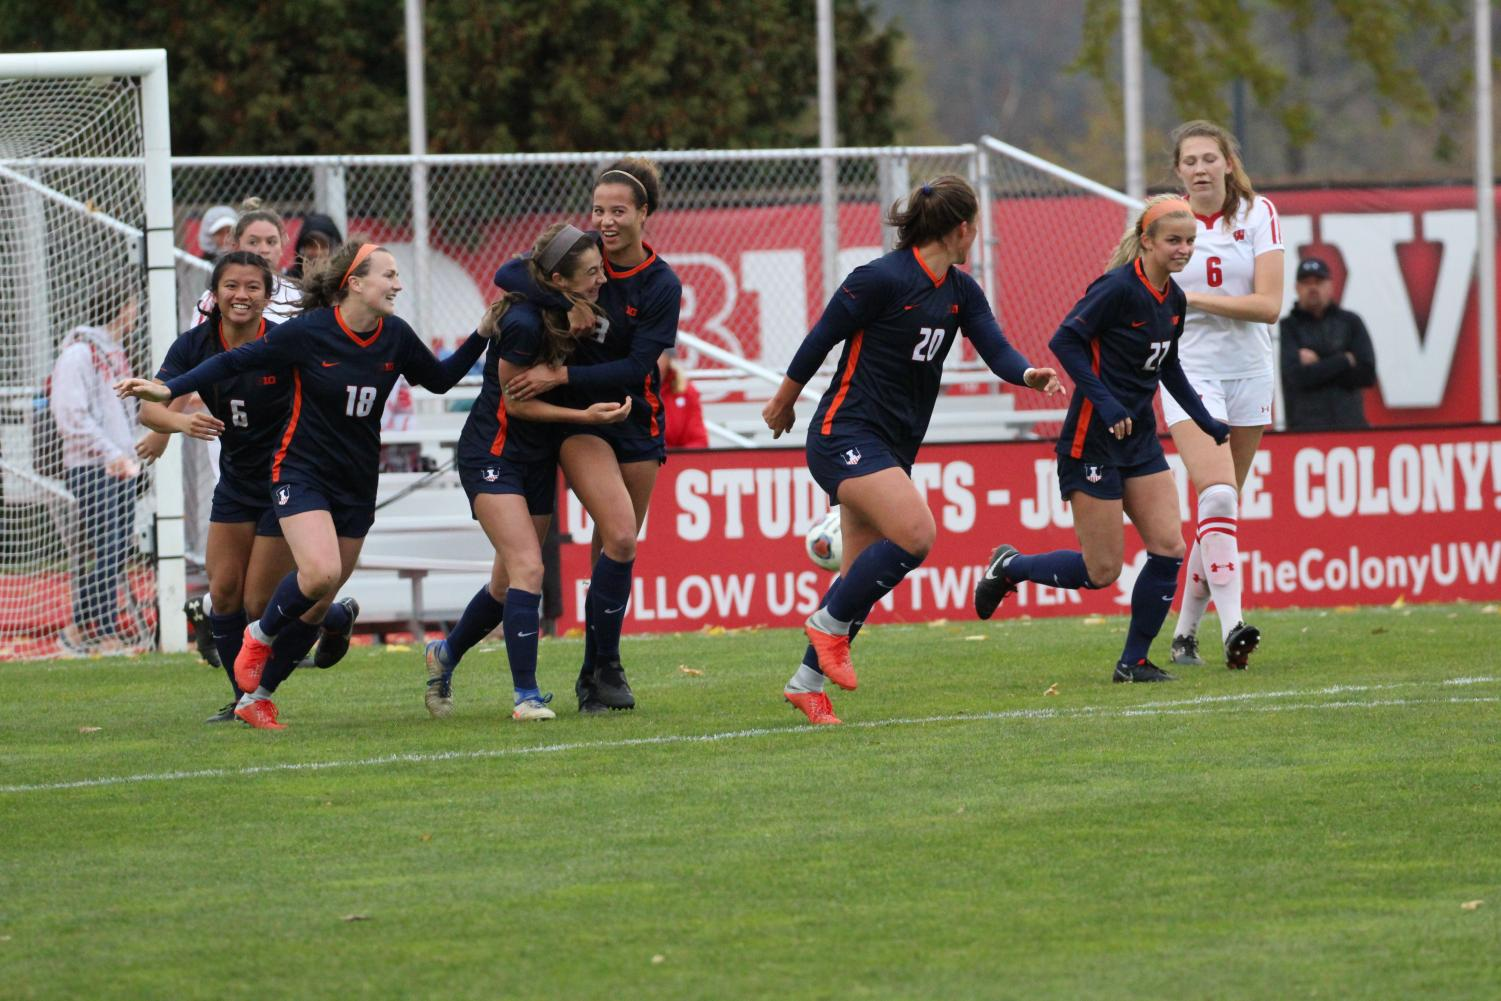 The Illinois soccer team celebrates during its Big Ten quarterfinals win over Wisconsin. The team won its first tournament game since 2012 by going 3-0 in penalty kicks.